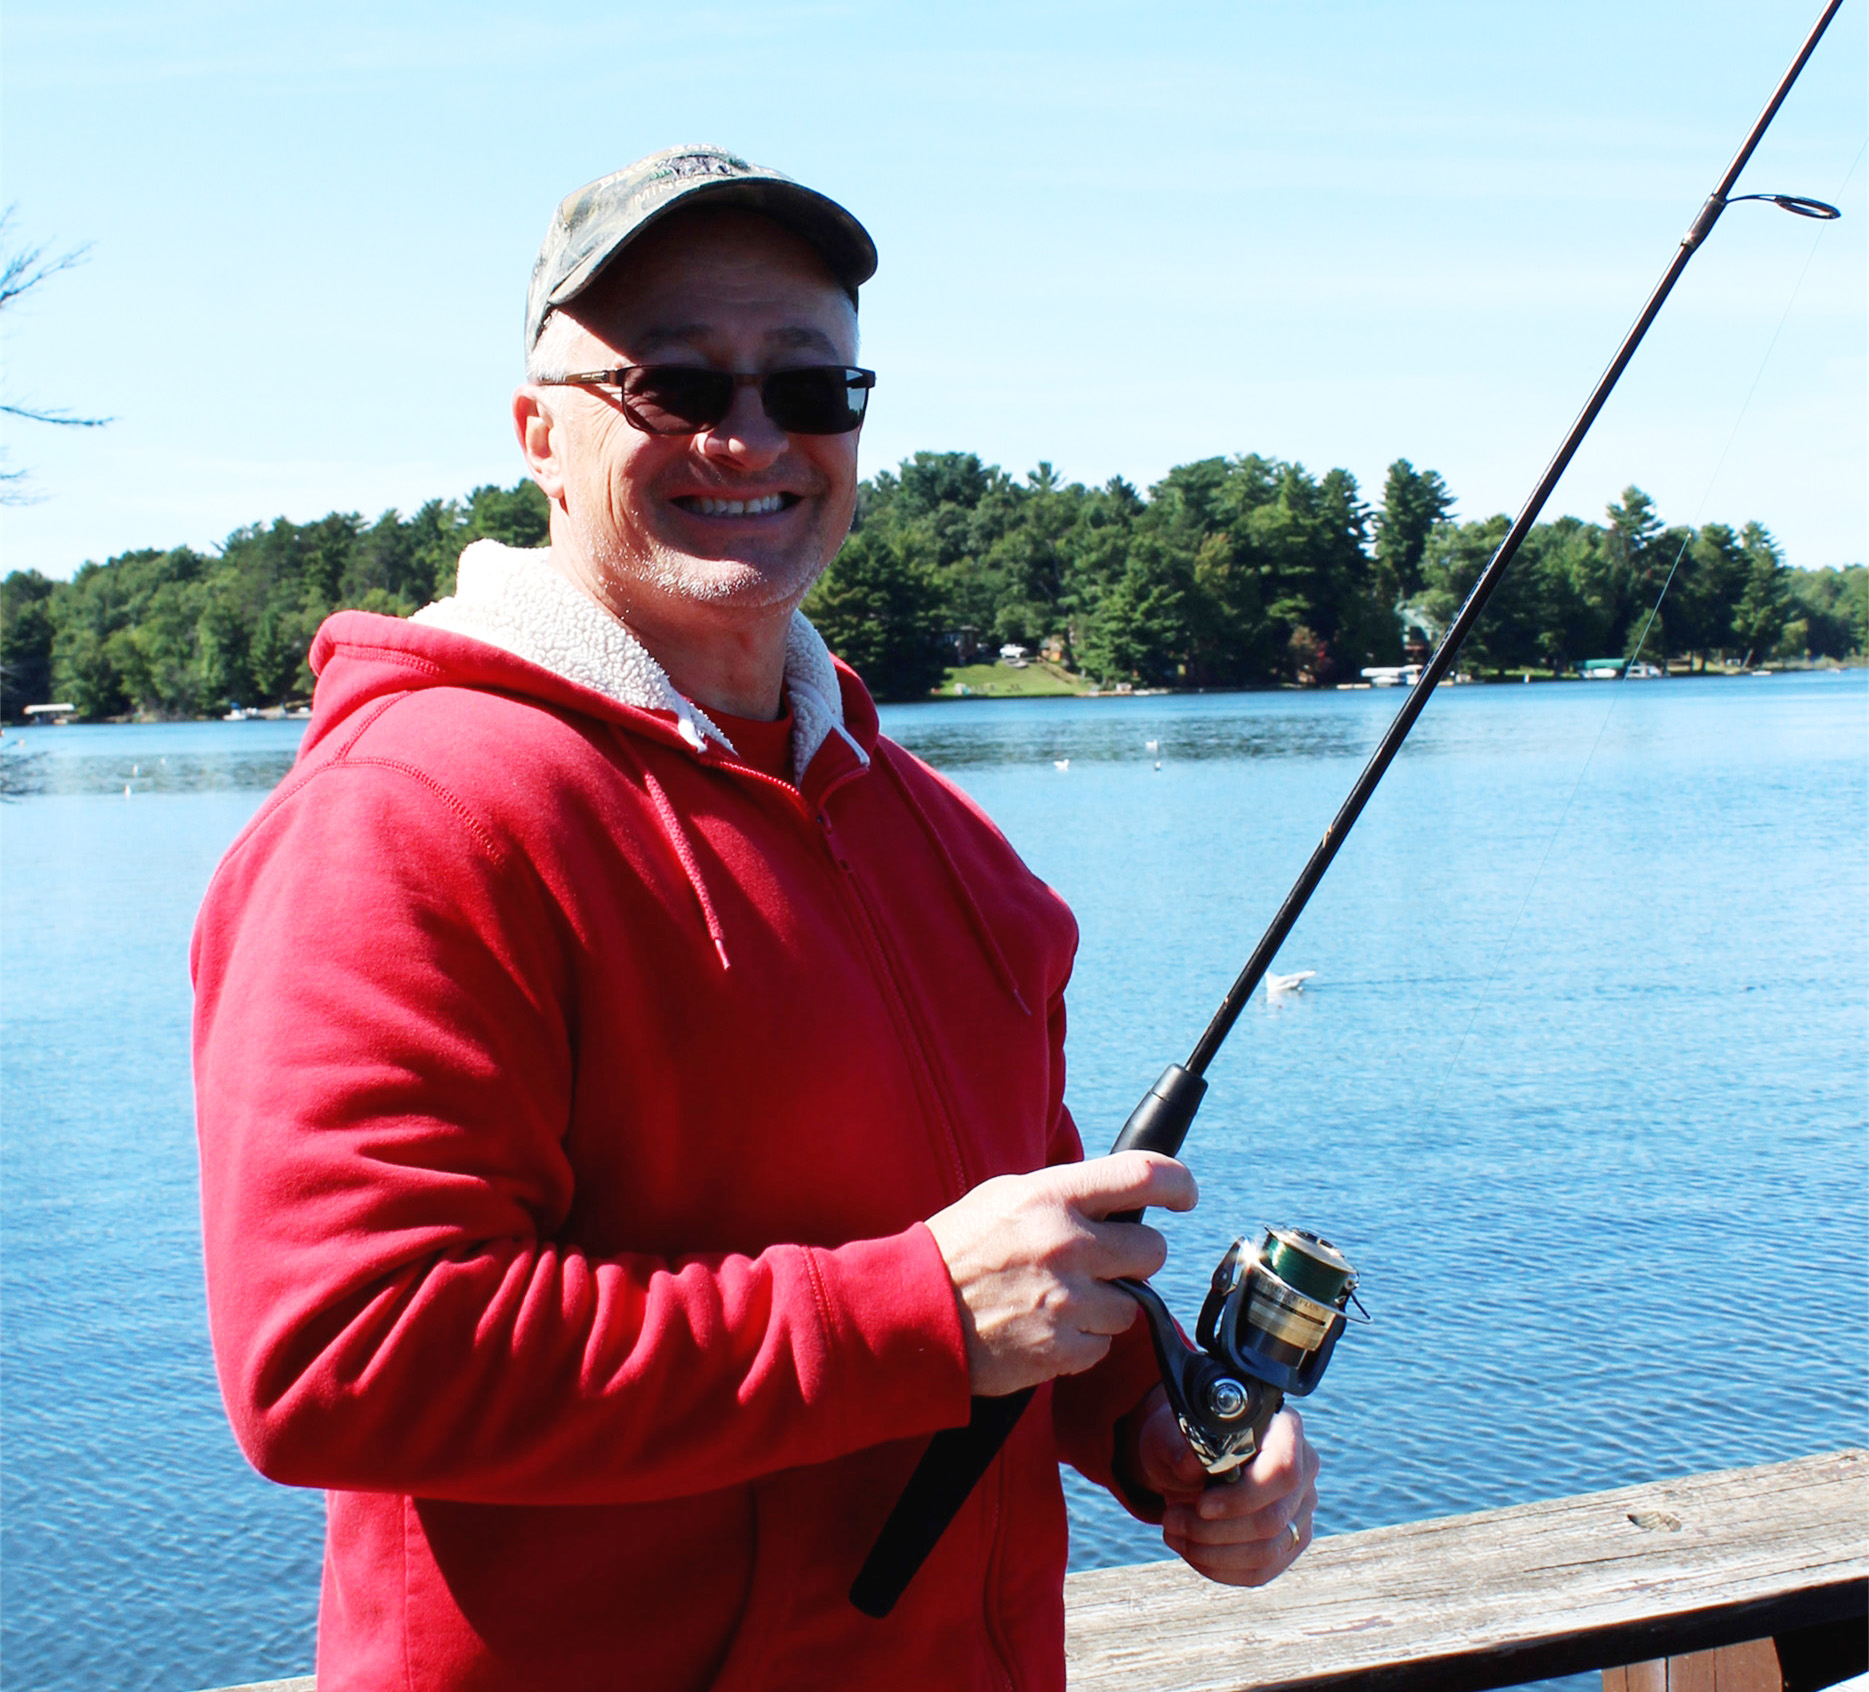 Chris spends the afternoon fishing in Minocqua. Kim Johnson photo